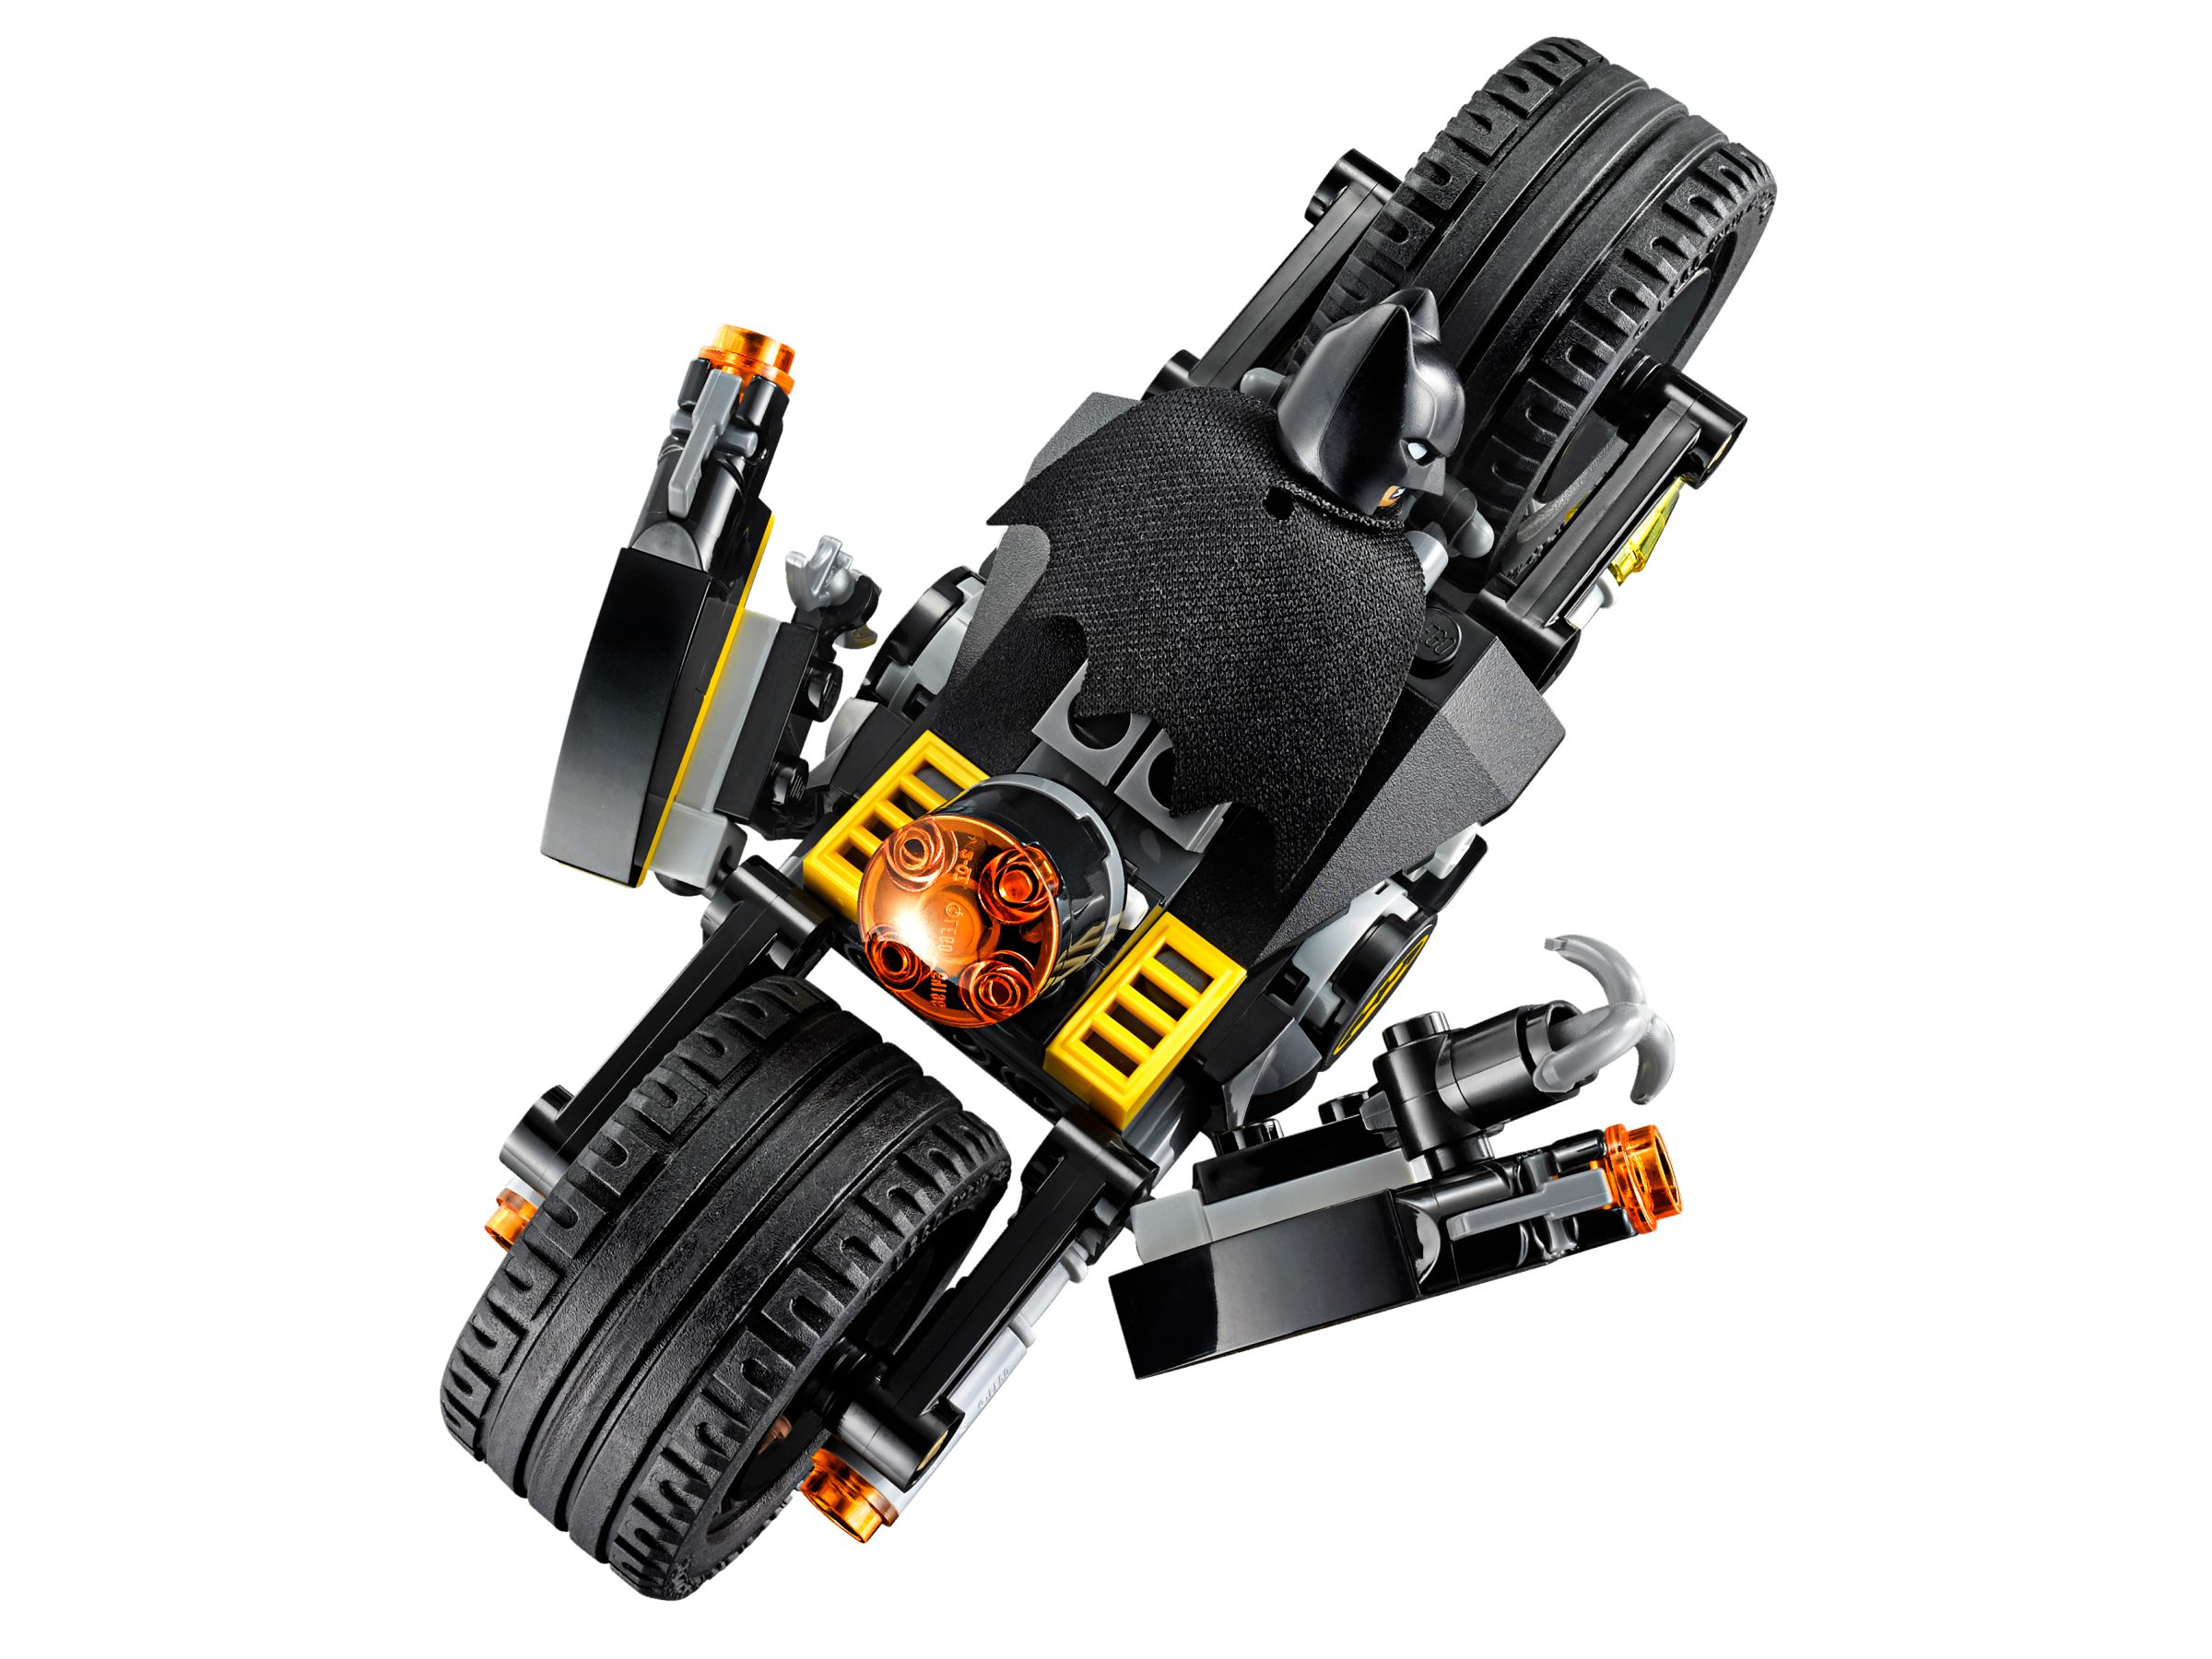 LEGO Super Heroes 76053 Batman™: Batcycle-Verfolgungsjagd in Gotham City LEGO_76053_alt3.jpg